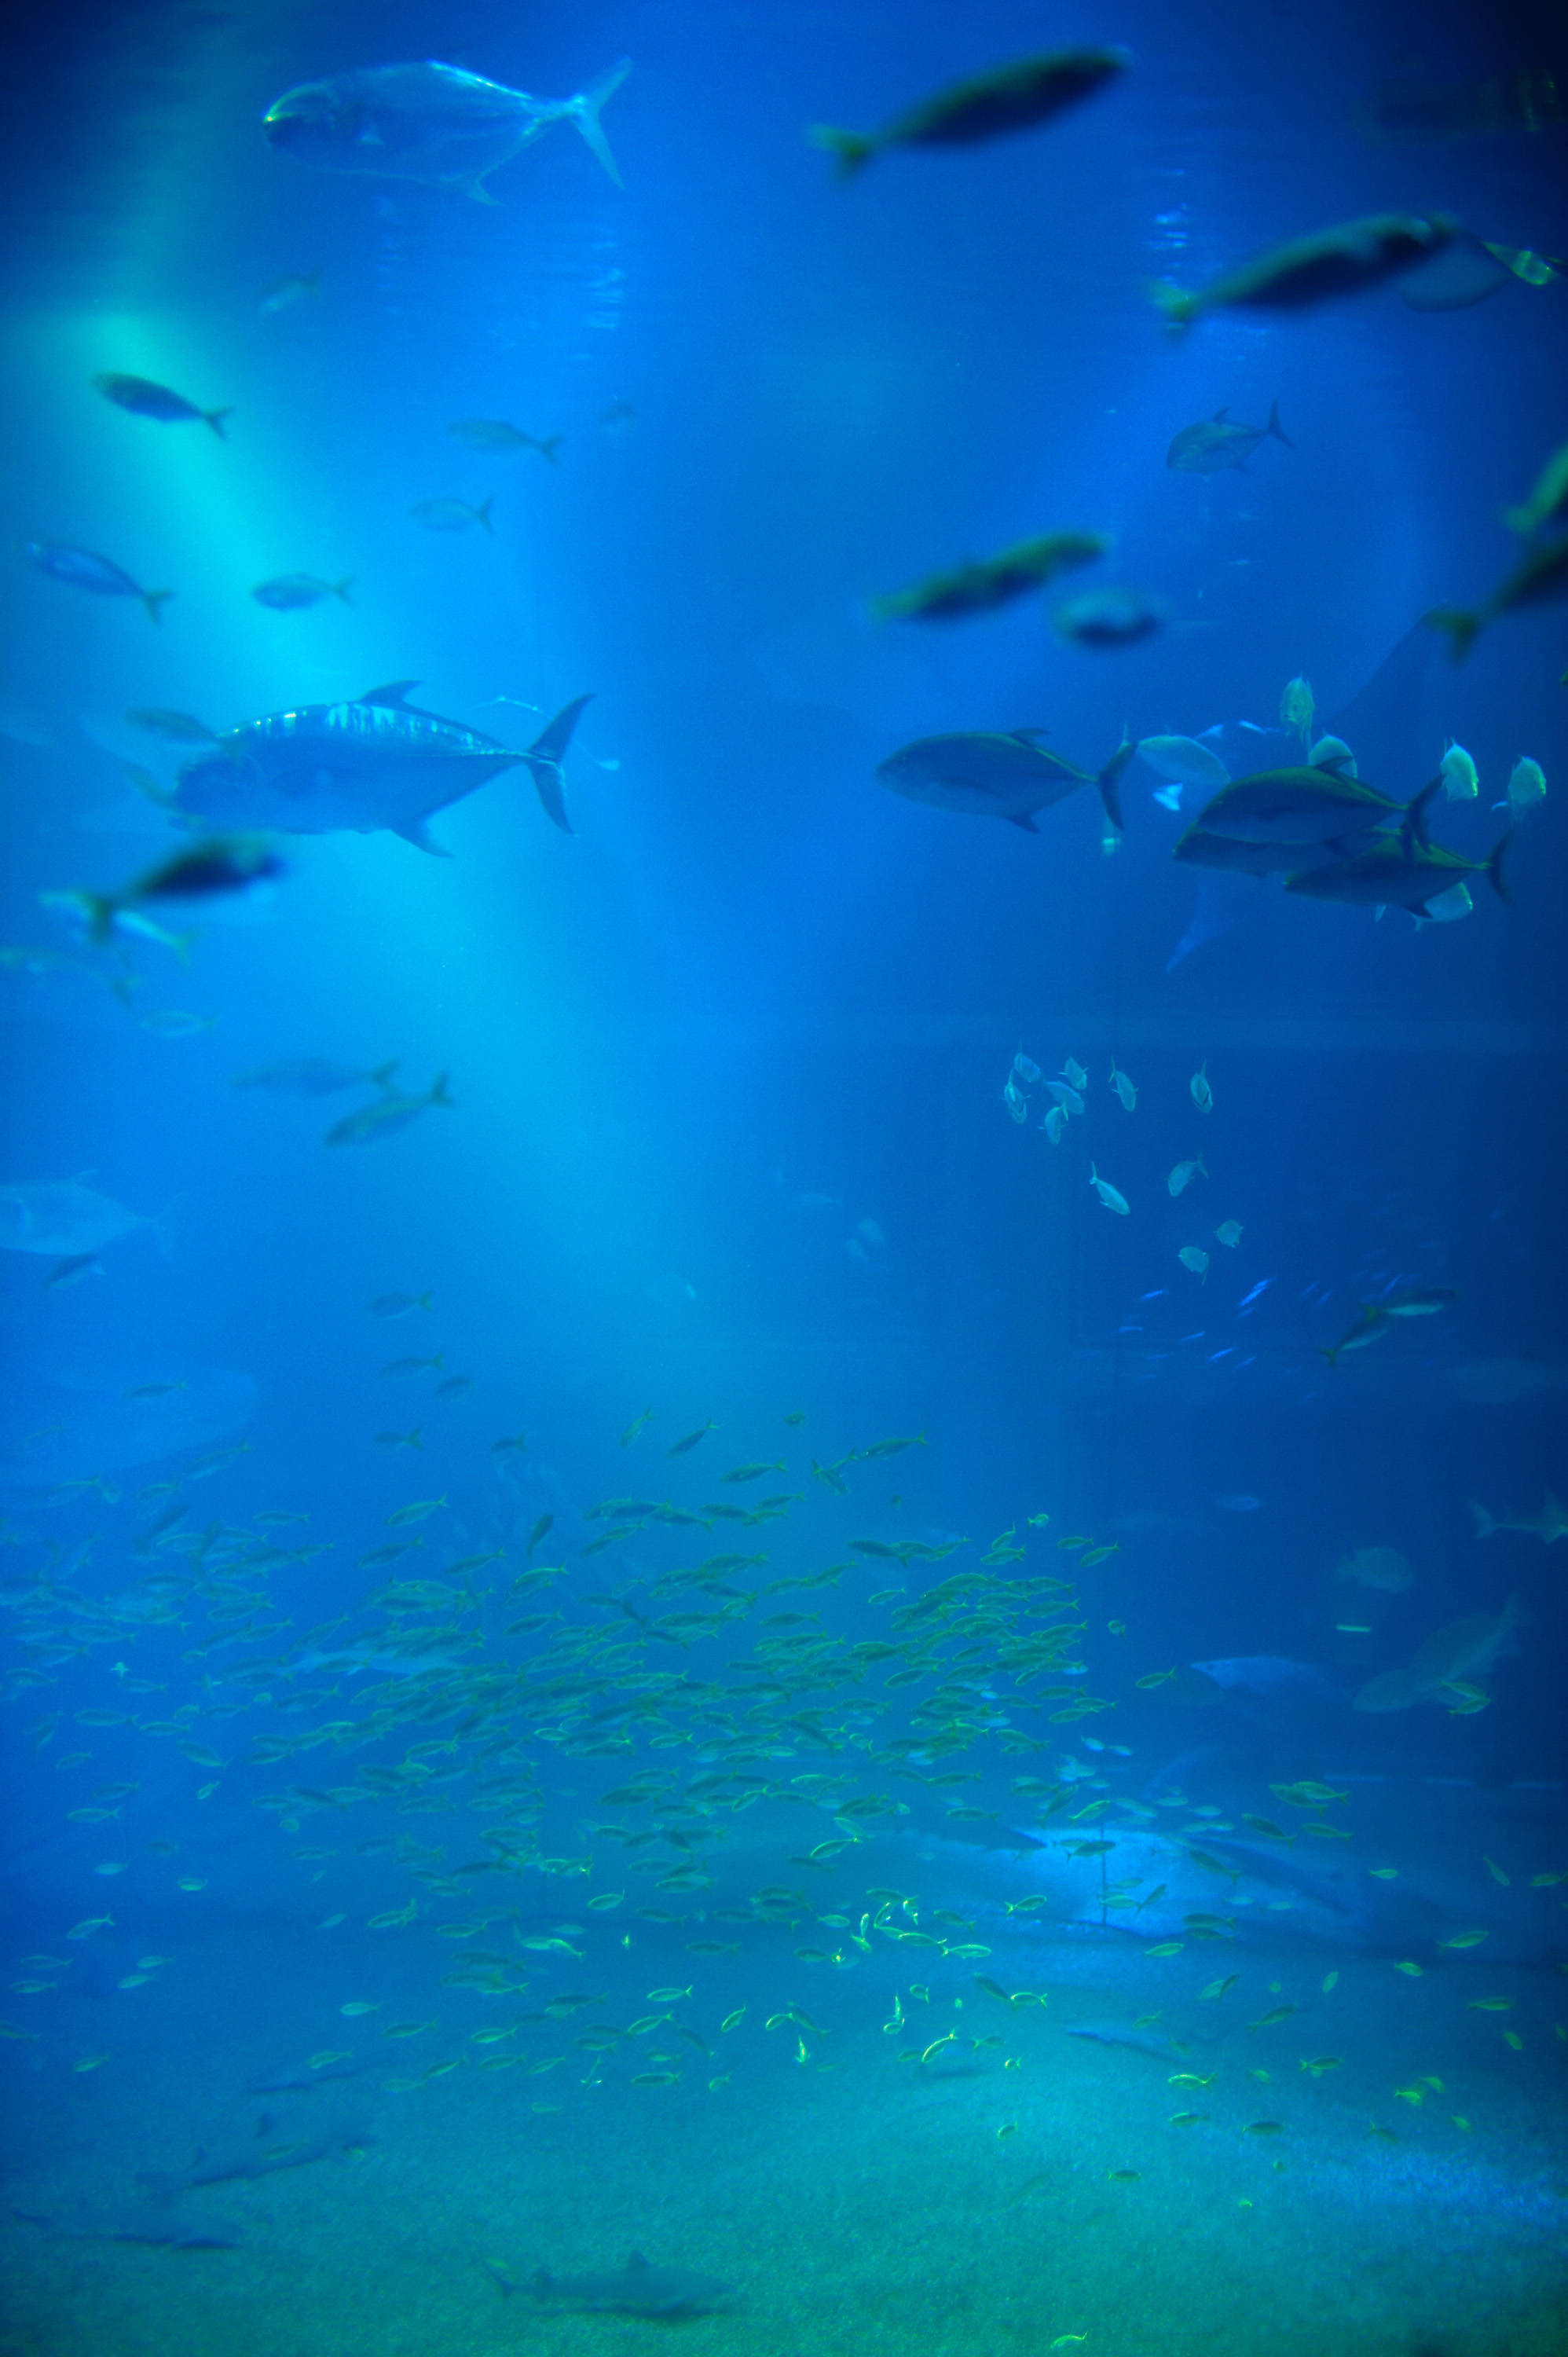 Background of a large marine aquarium tank with shoals of fish ...